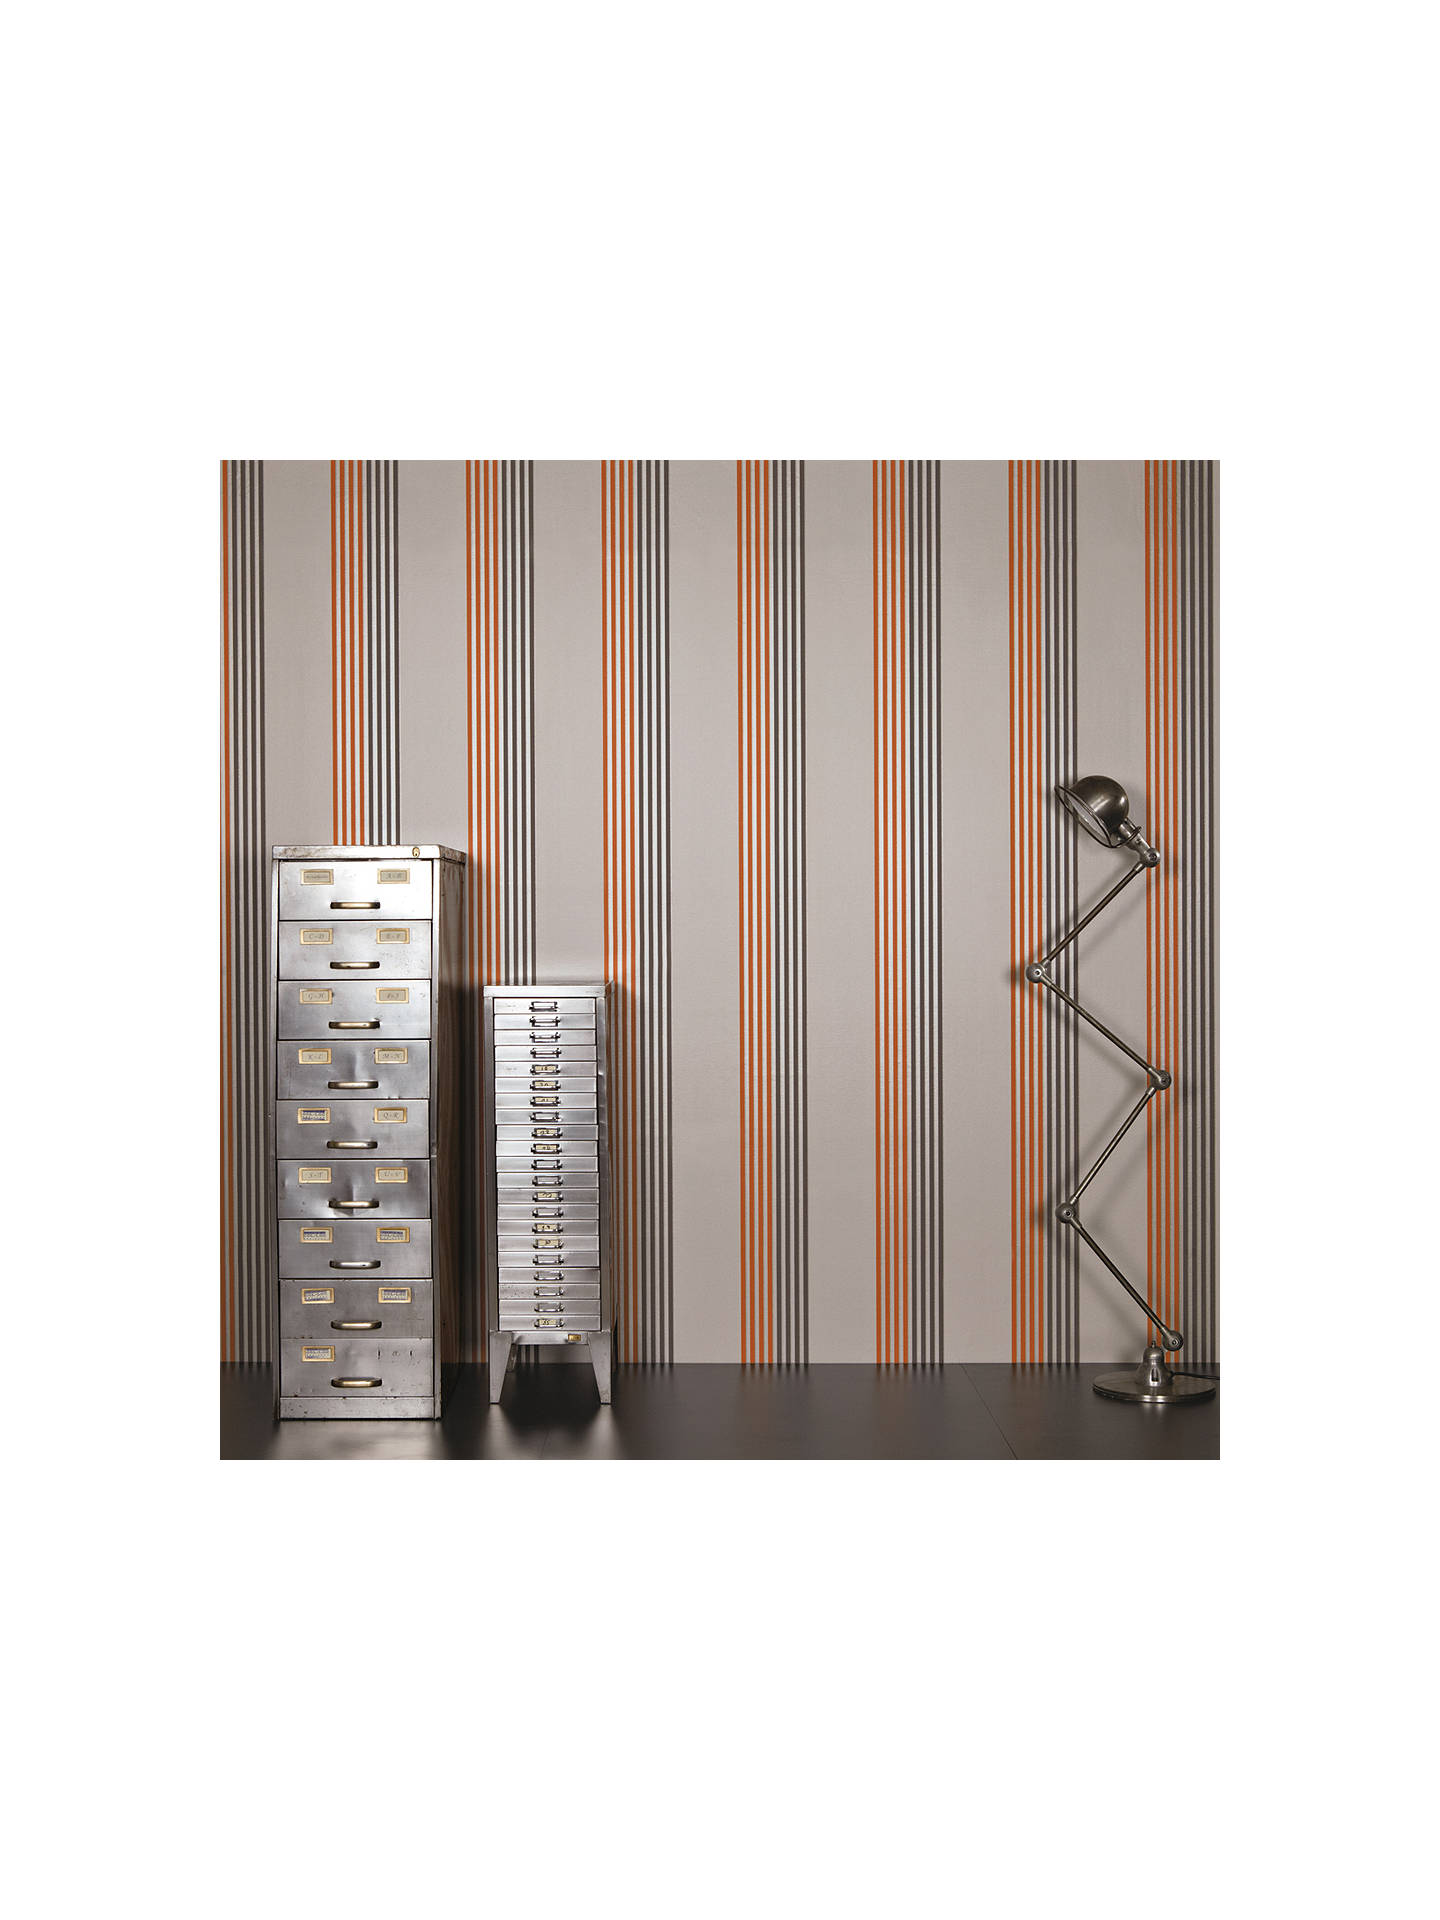 BuyBlack Edition Palladio Paste the Wall Wallpaper, Clementine W370/04 Online at johnlewis.com